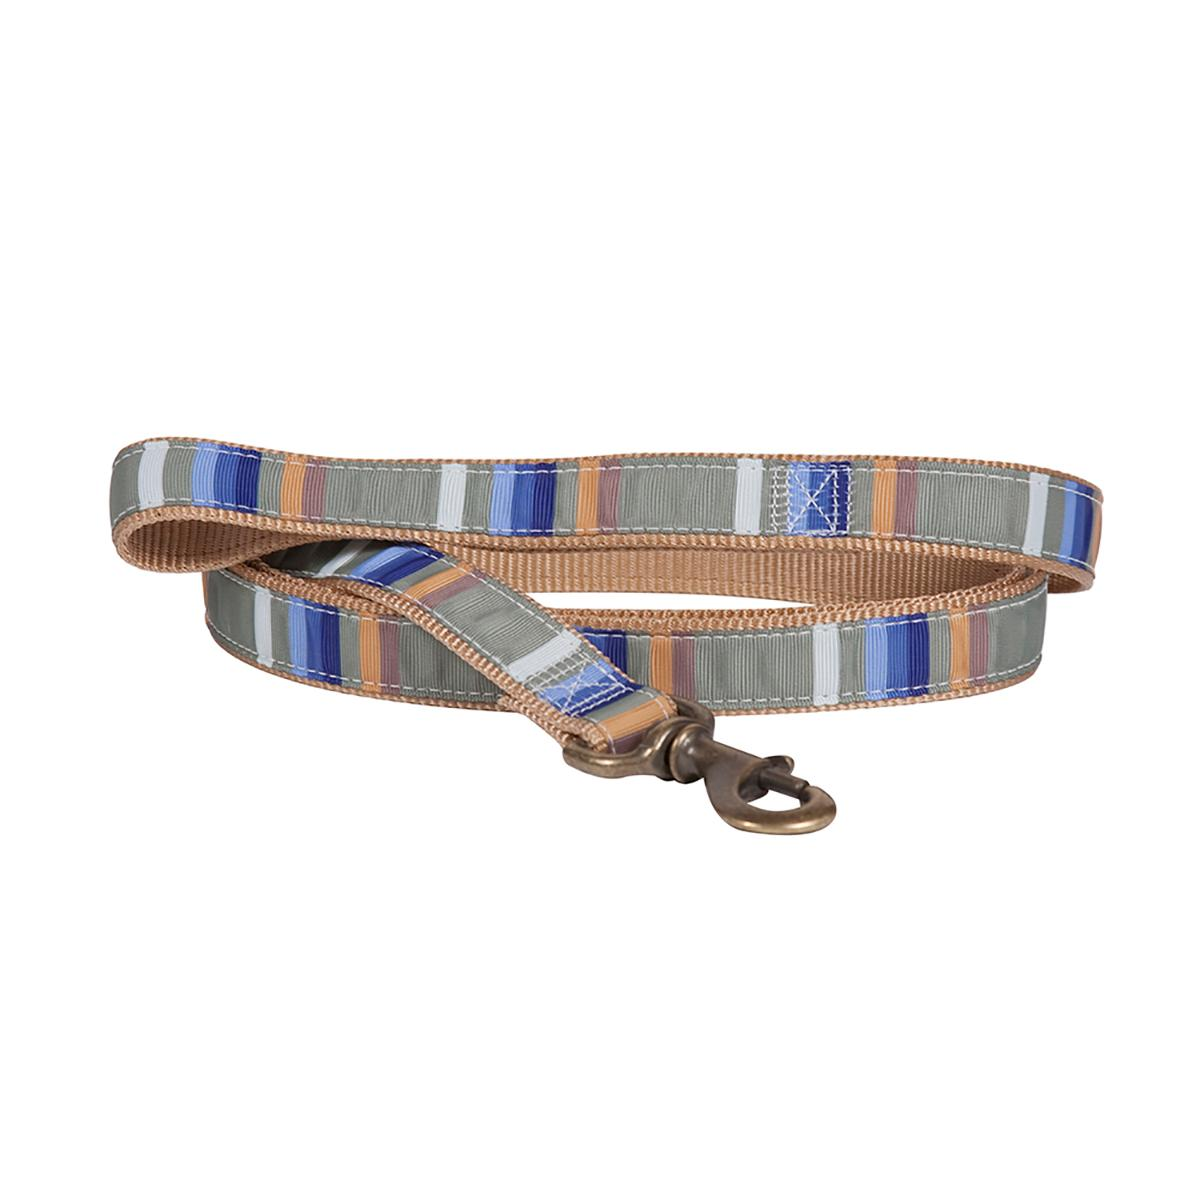 Pendleton Rocky Mountain National Park Hiker Dog Leash